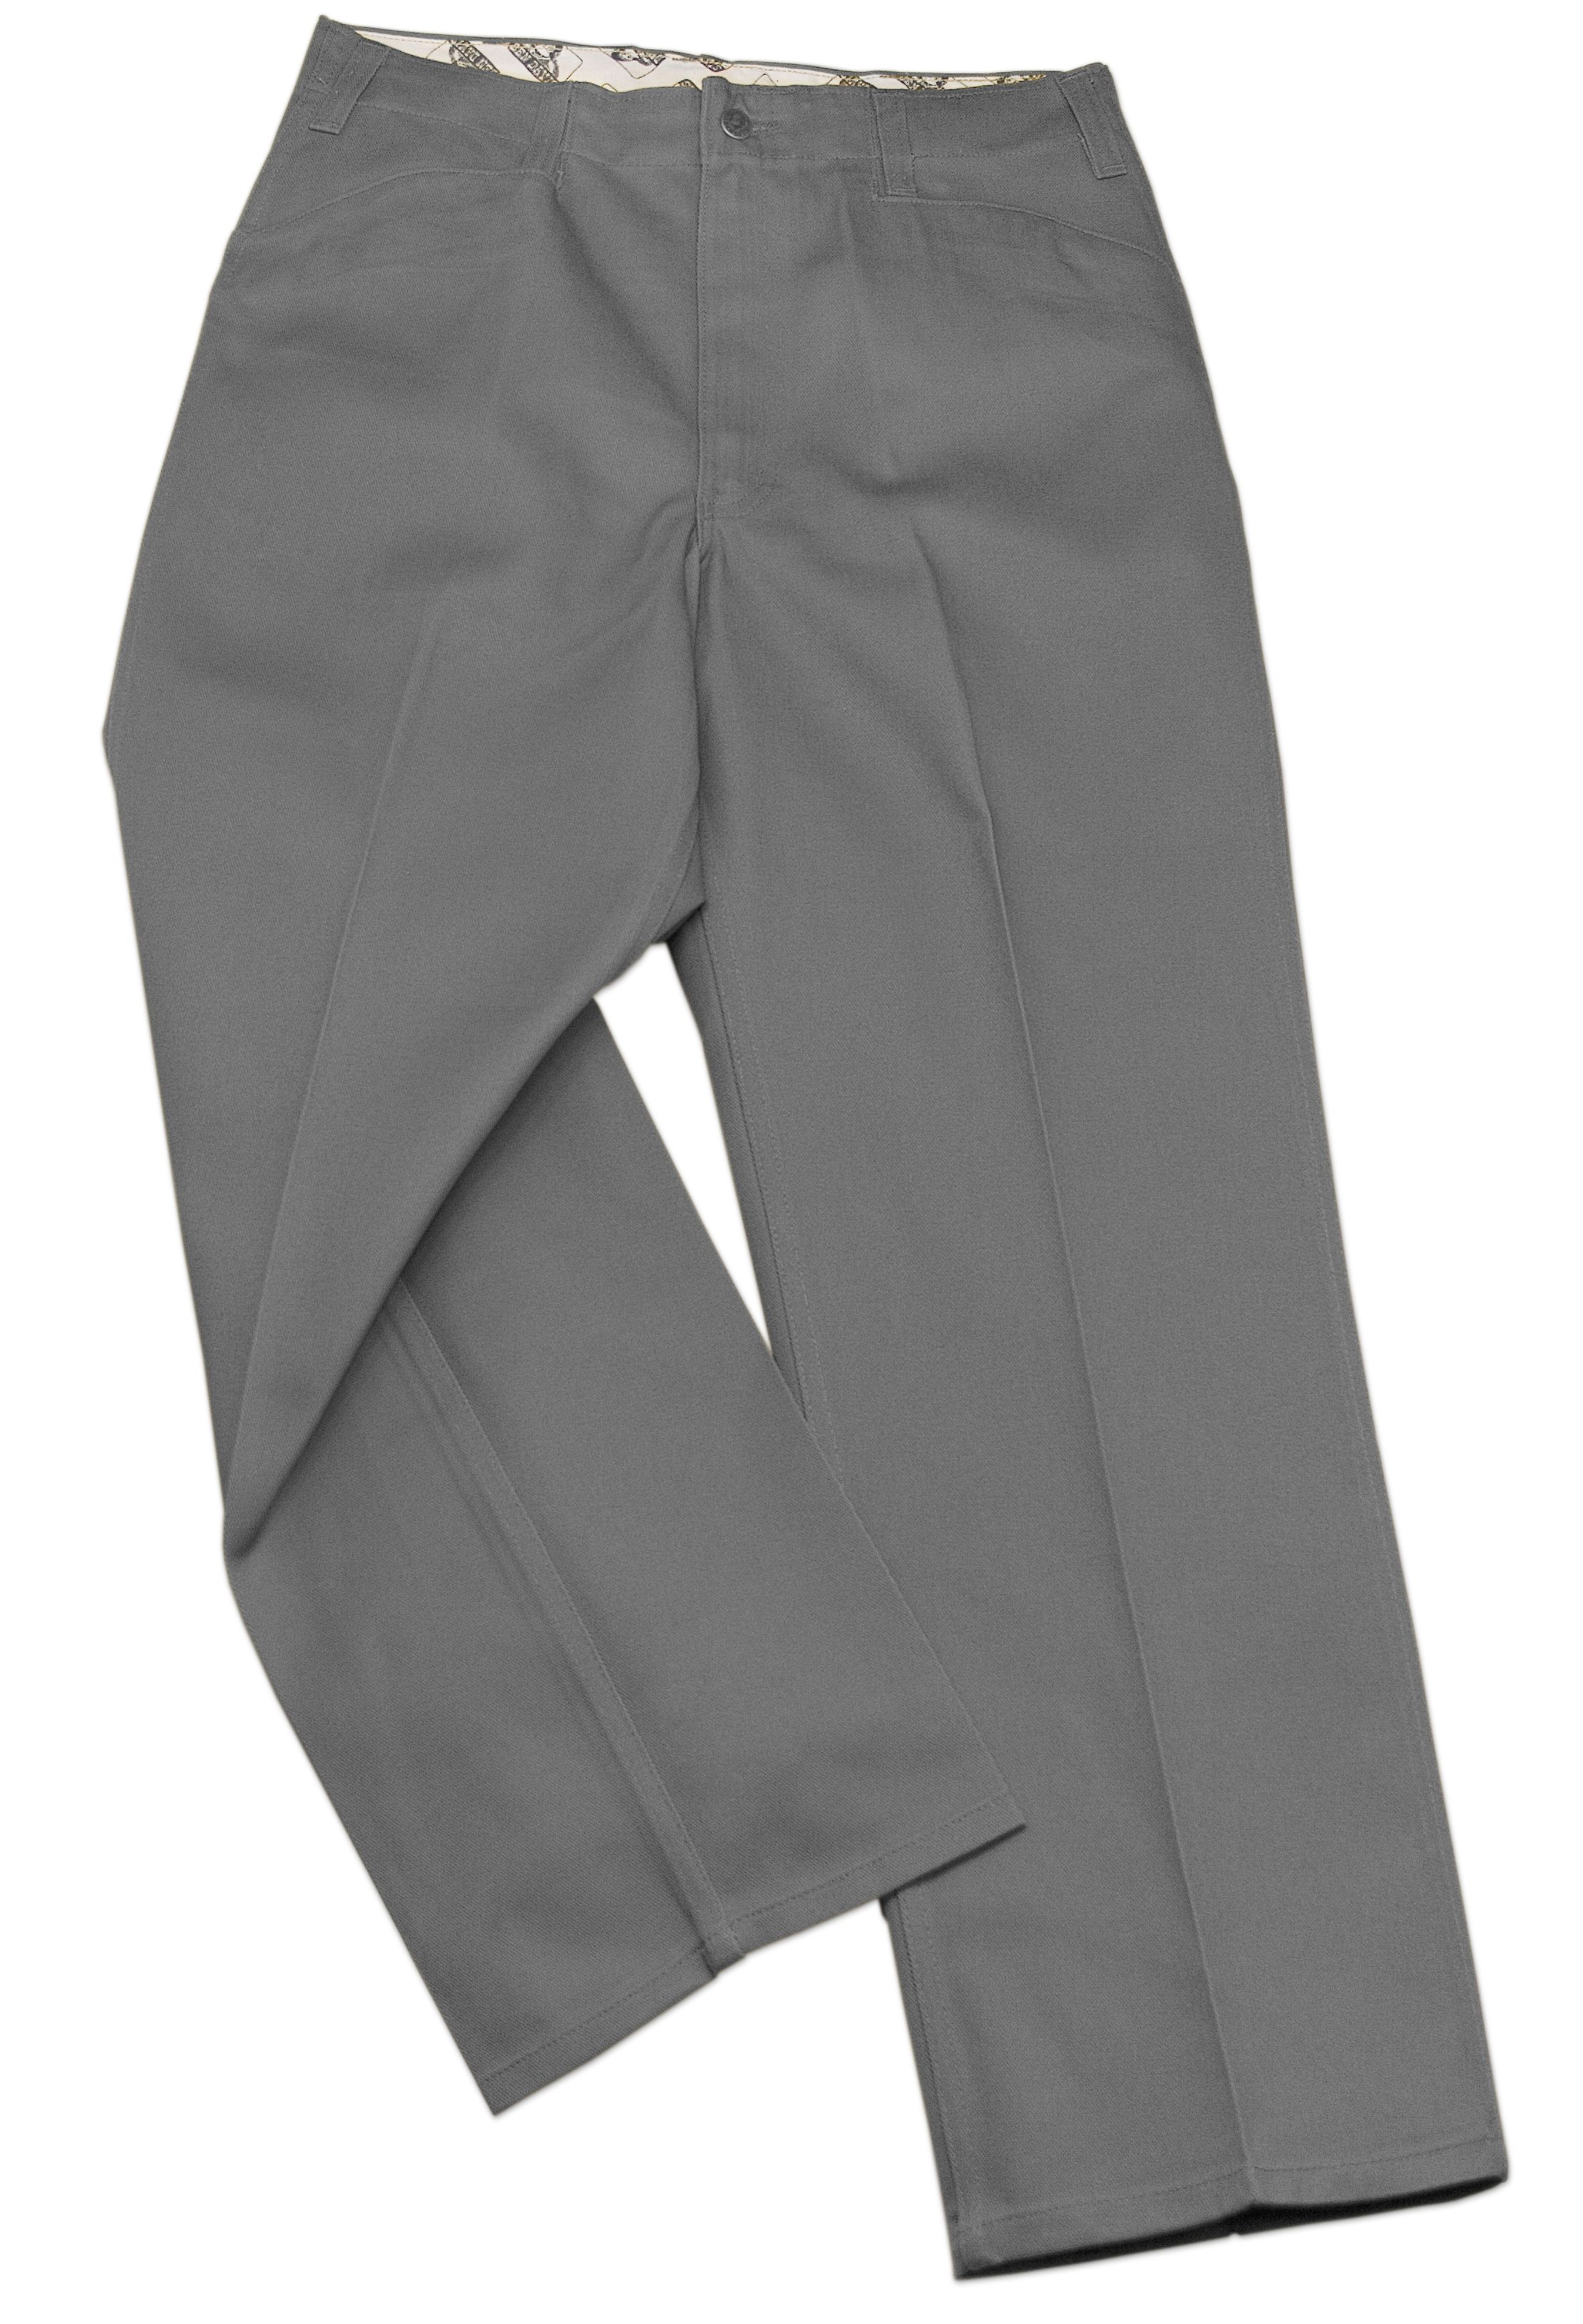 f4a3731df7d Original Ben s Pants Trim Fit - Ben Davis Clothing